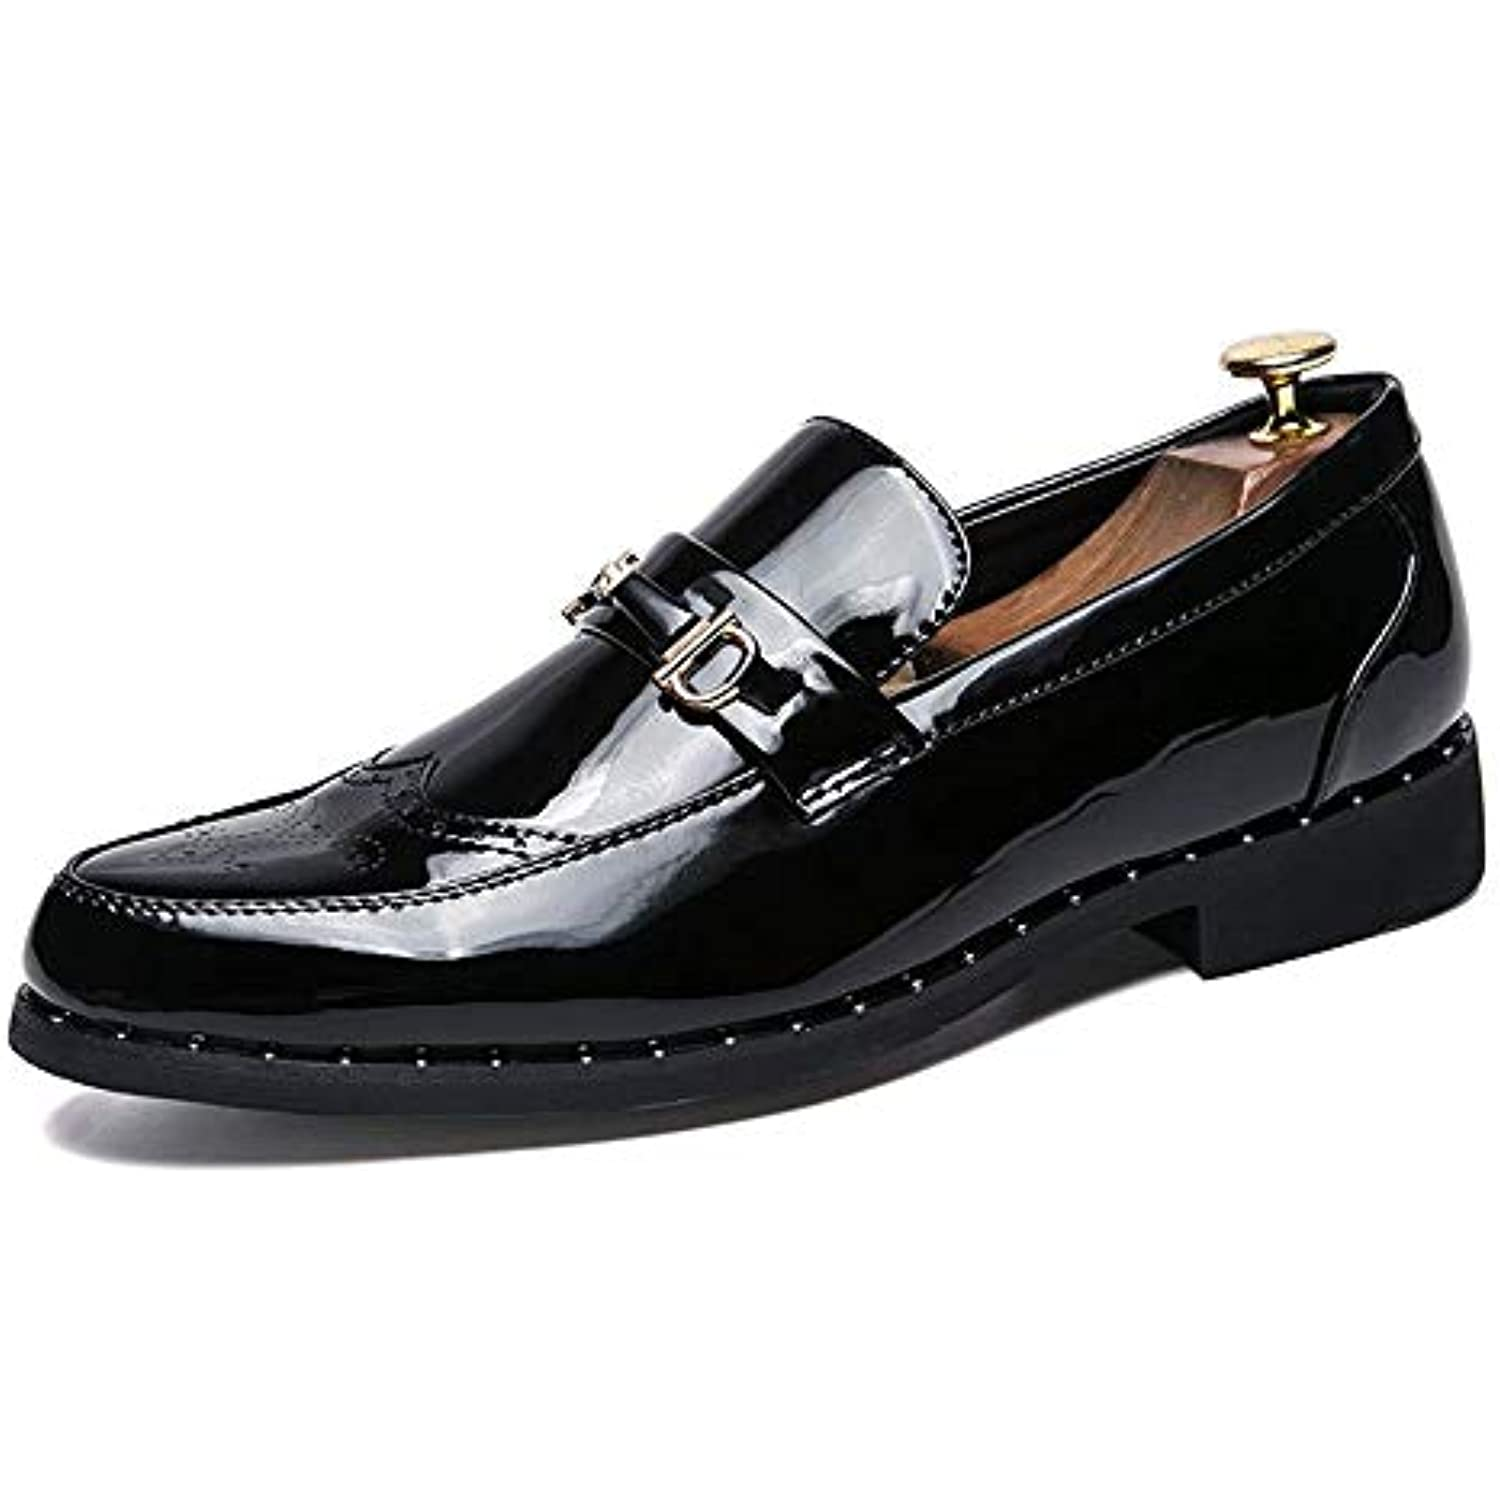 2018 Oxford pour Fuweiencore Chaussures hommes 8wk0OPXn